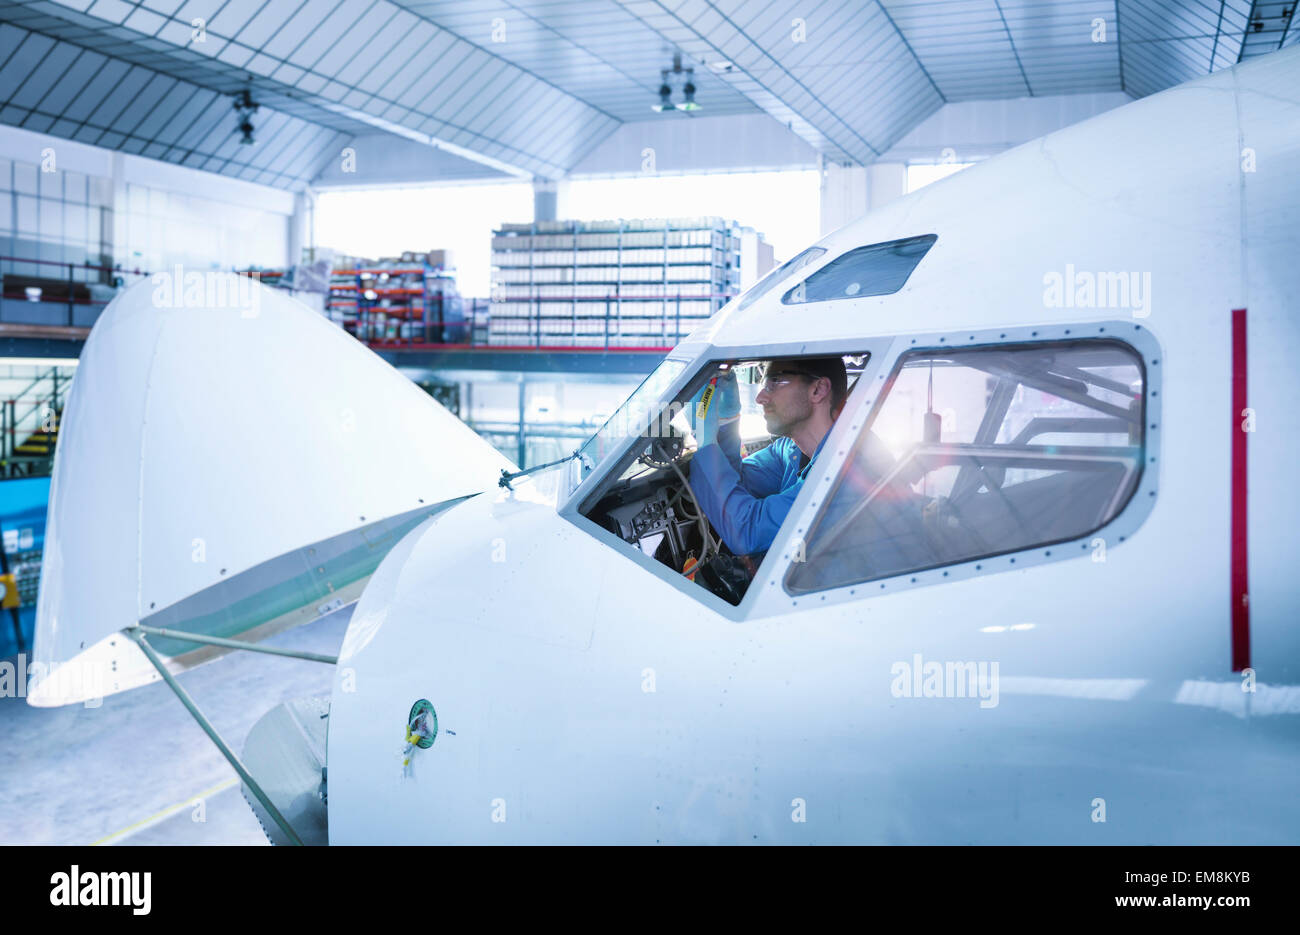 Engineer working in aircraft cockpit in aircraft maintenance factory - Stock Image